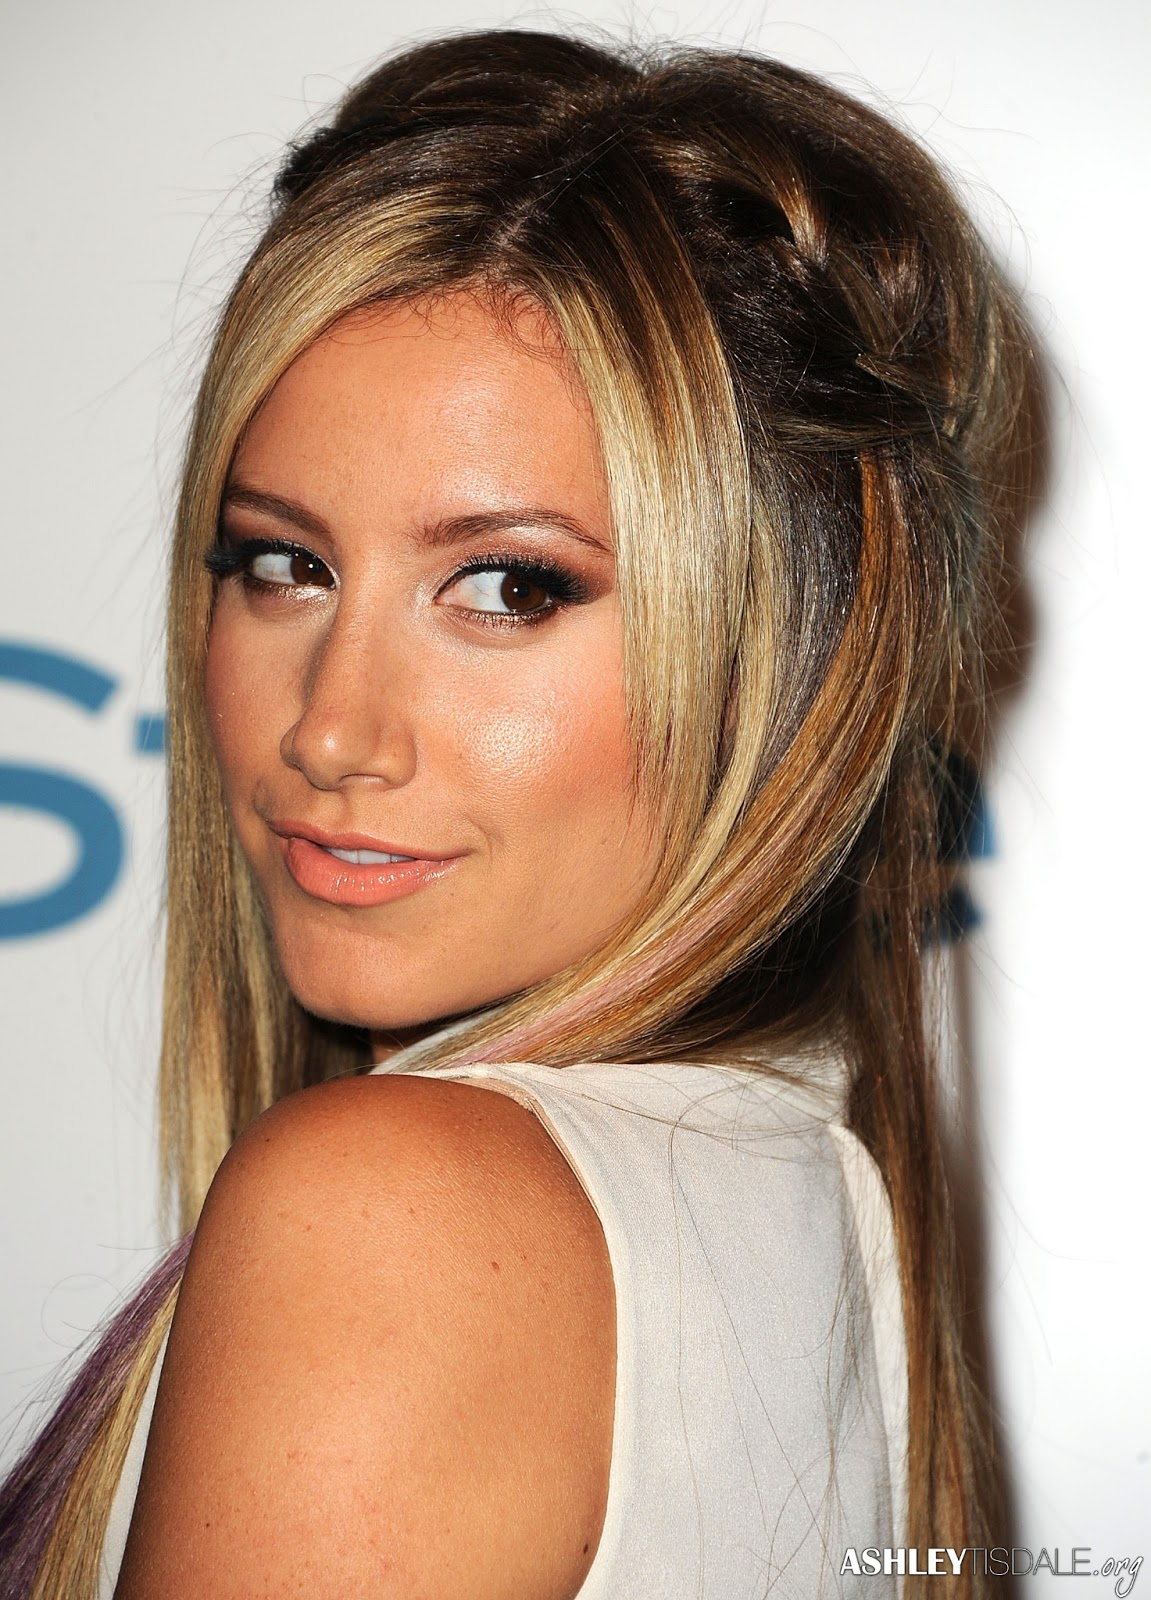 Ashley Tisdale Pictures Gallery 15 Film Actresses